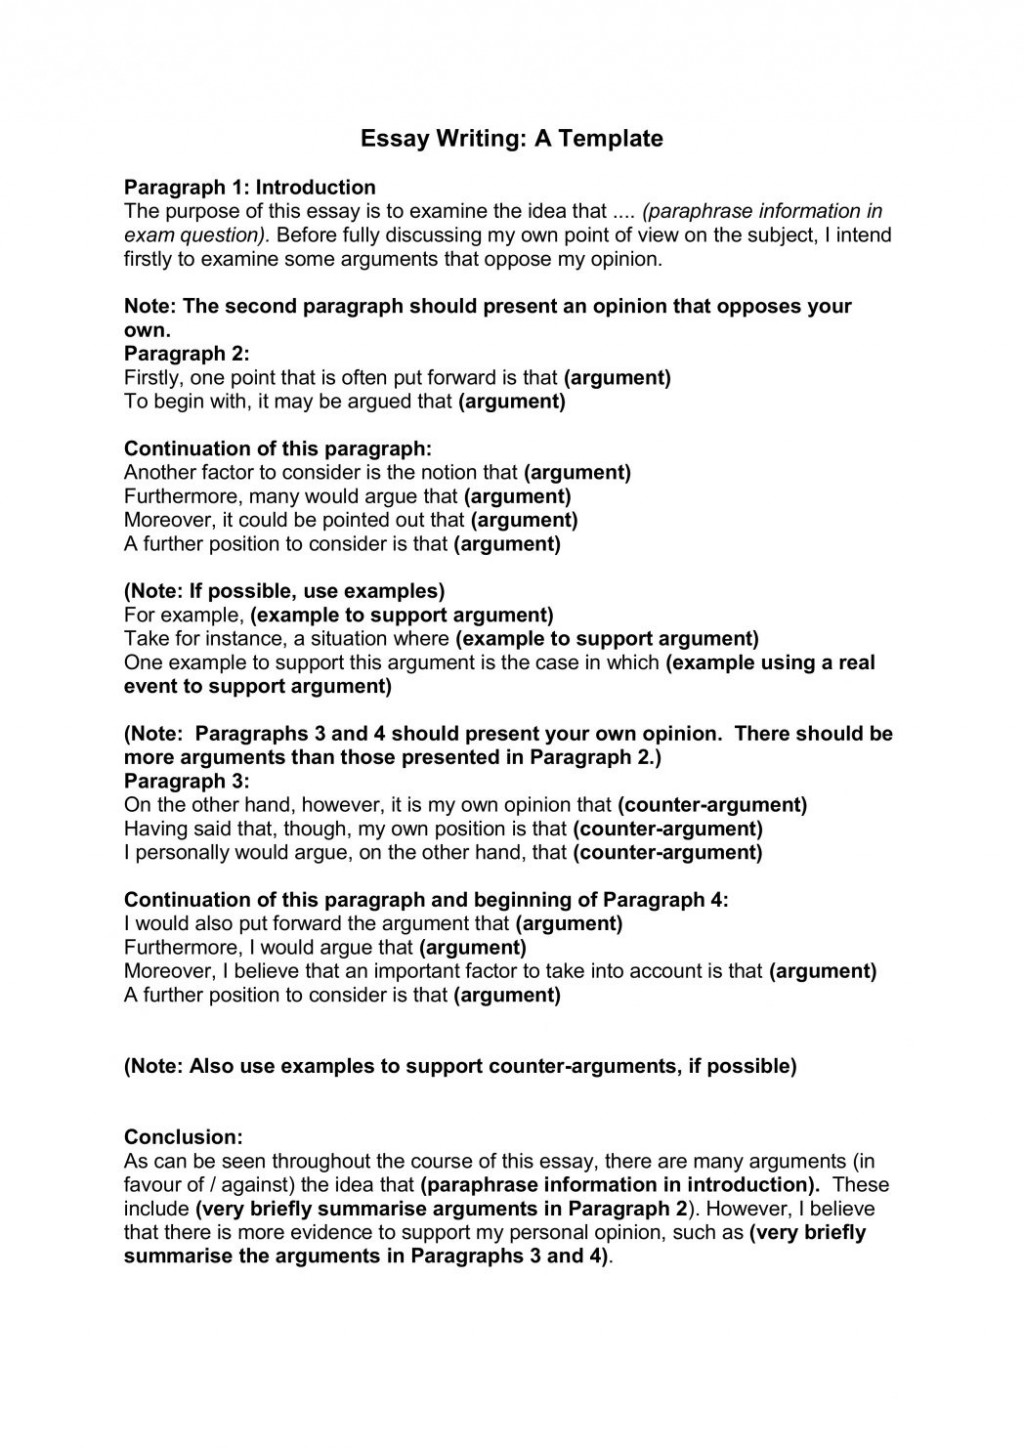 020 Argumentary Essay Thesis For Literary Argumentative How To Start Off Body Paragraph In An Writing Template P Mys Good 1048x1482 Striking Can I End A Examples Large